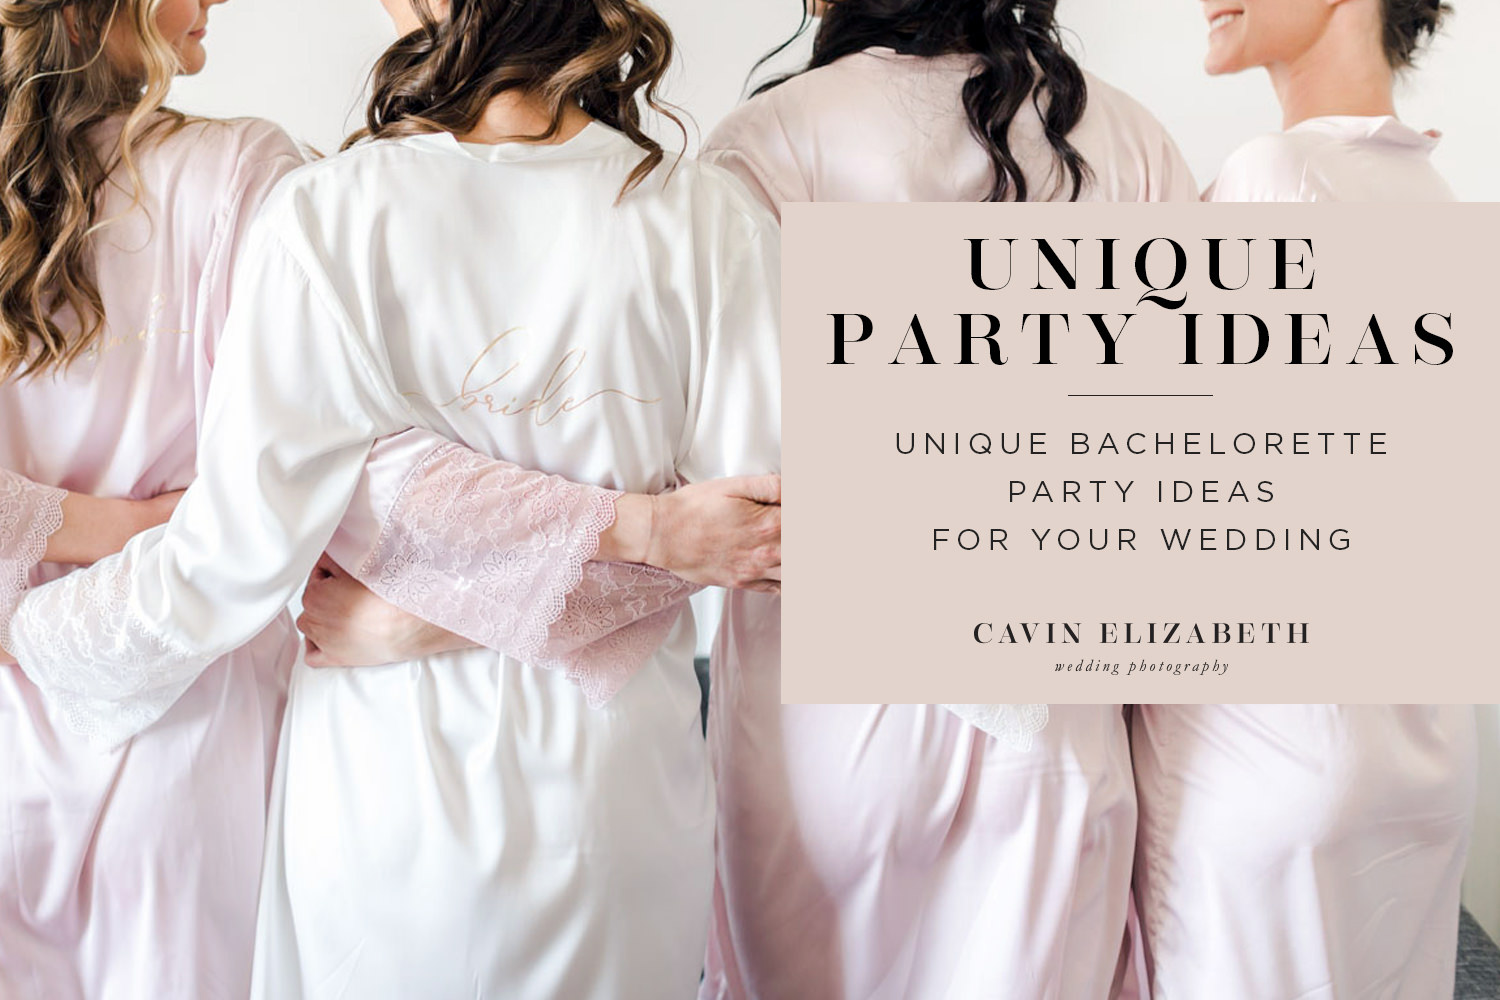 Shake Things up with These 4 Unique Bachelorette Party Ideas